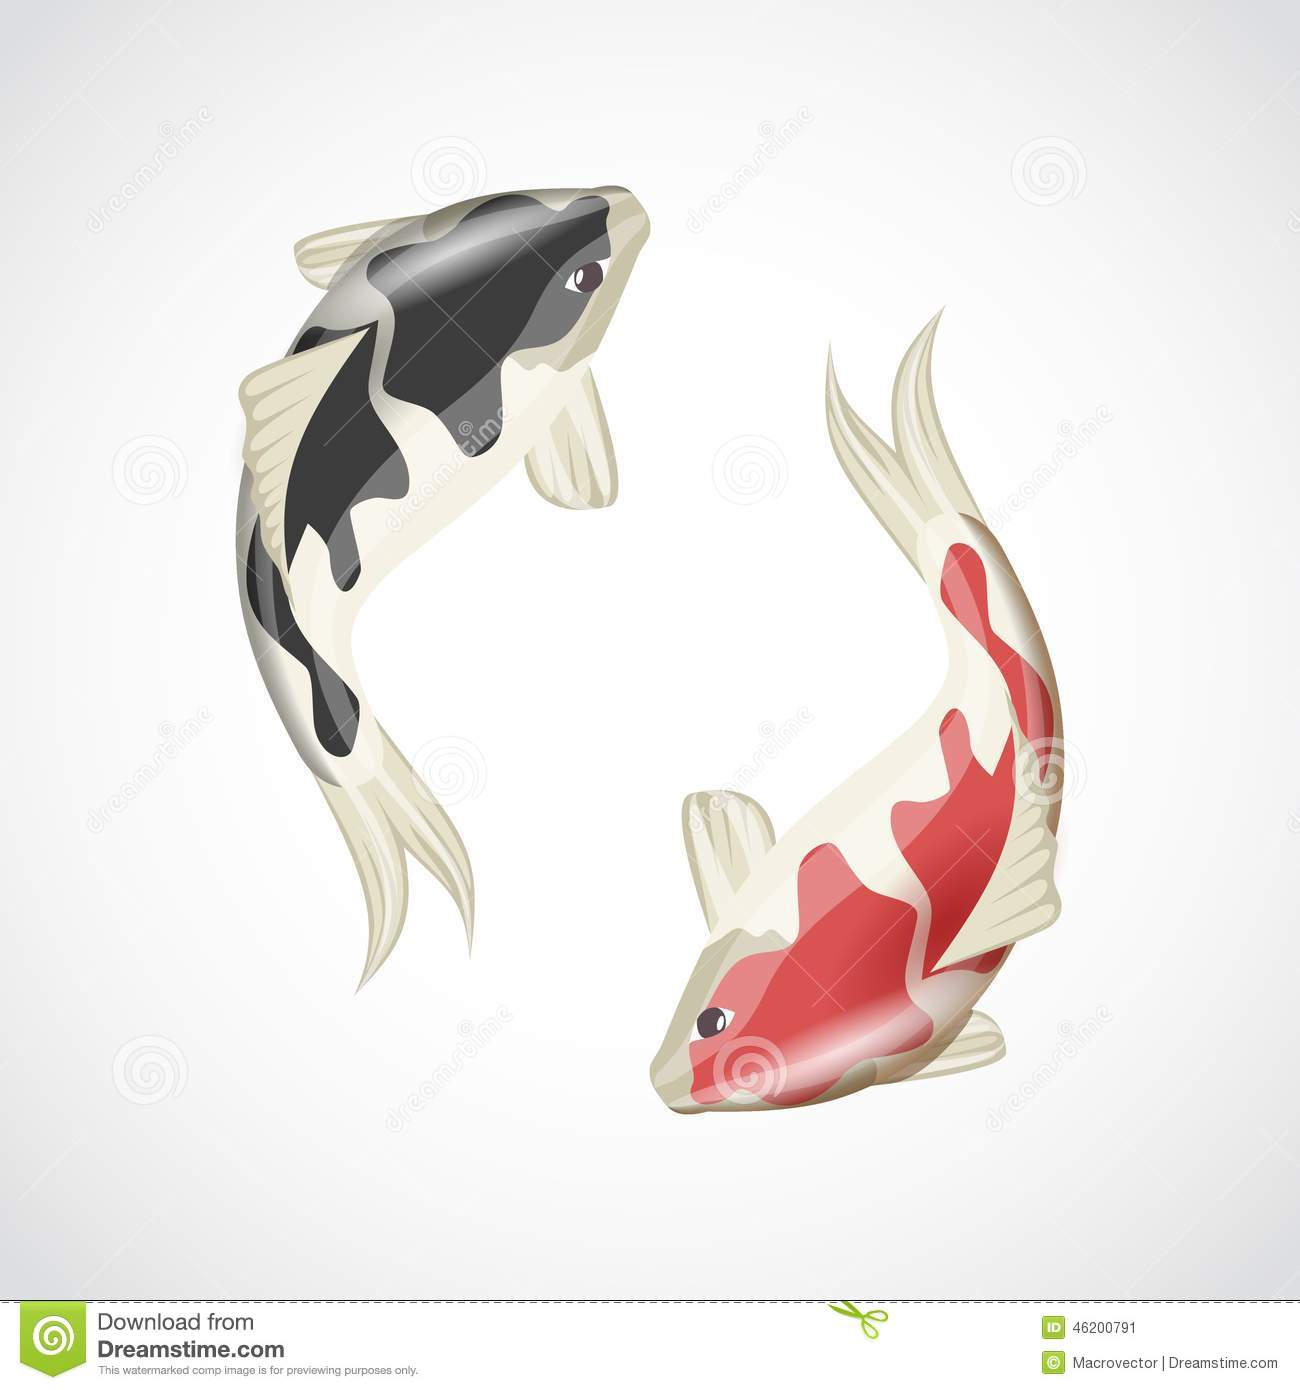 Chinese japanese koi fish red carp water animal isolated on white ...